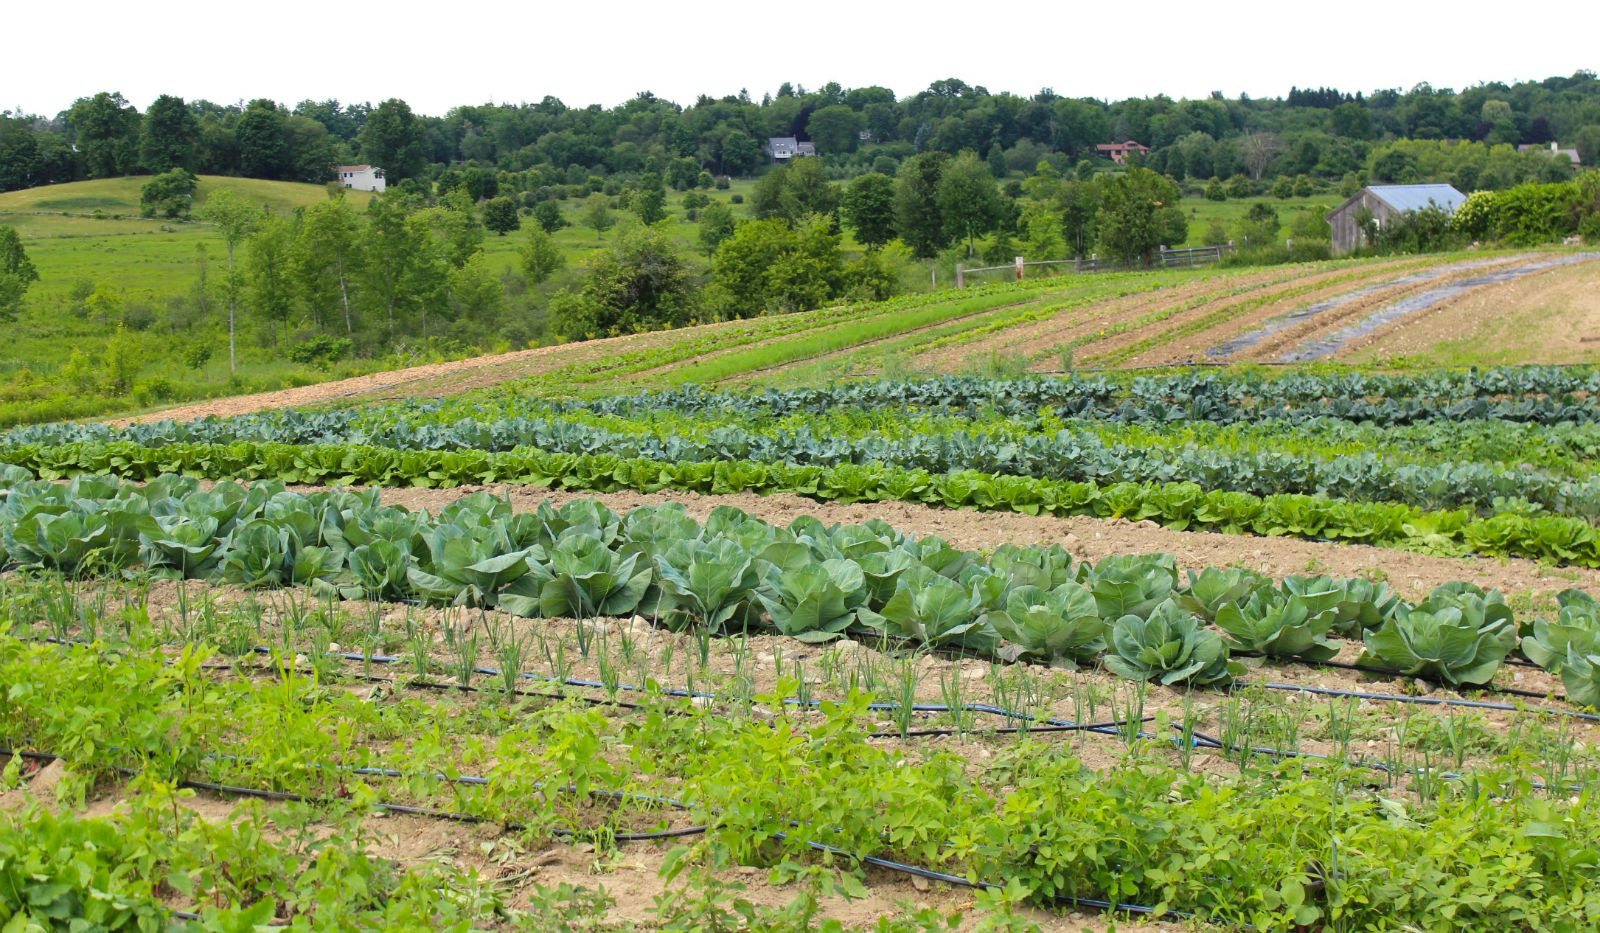 vegetables growing in rows on farm field